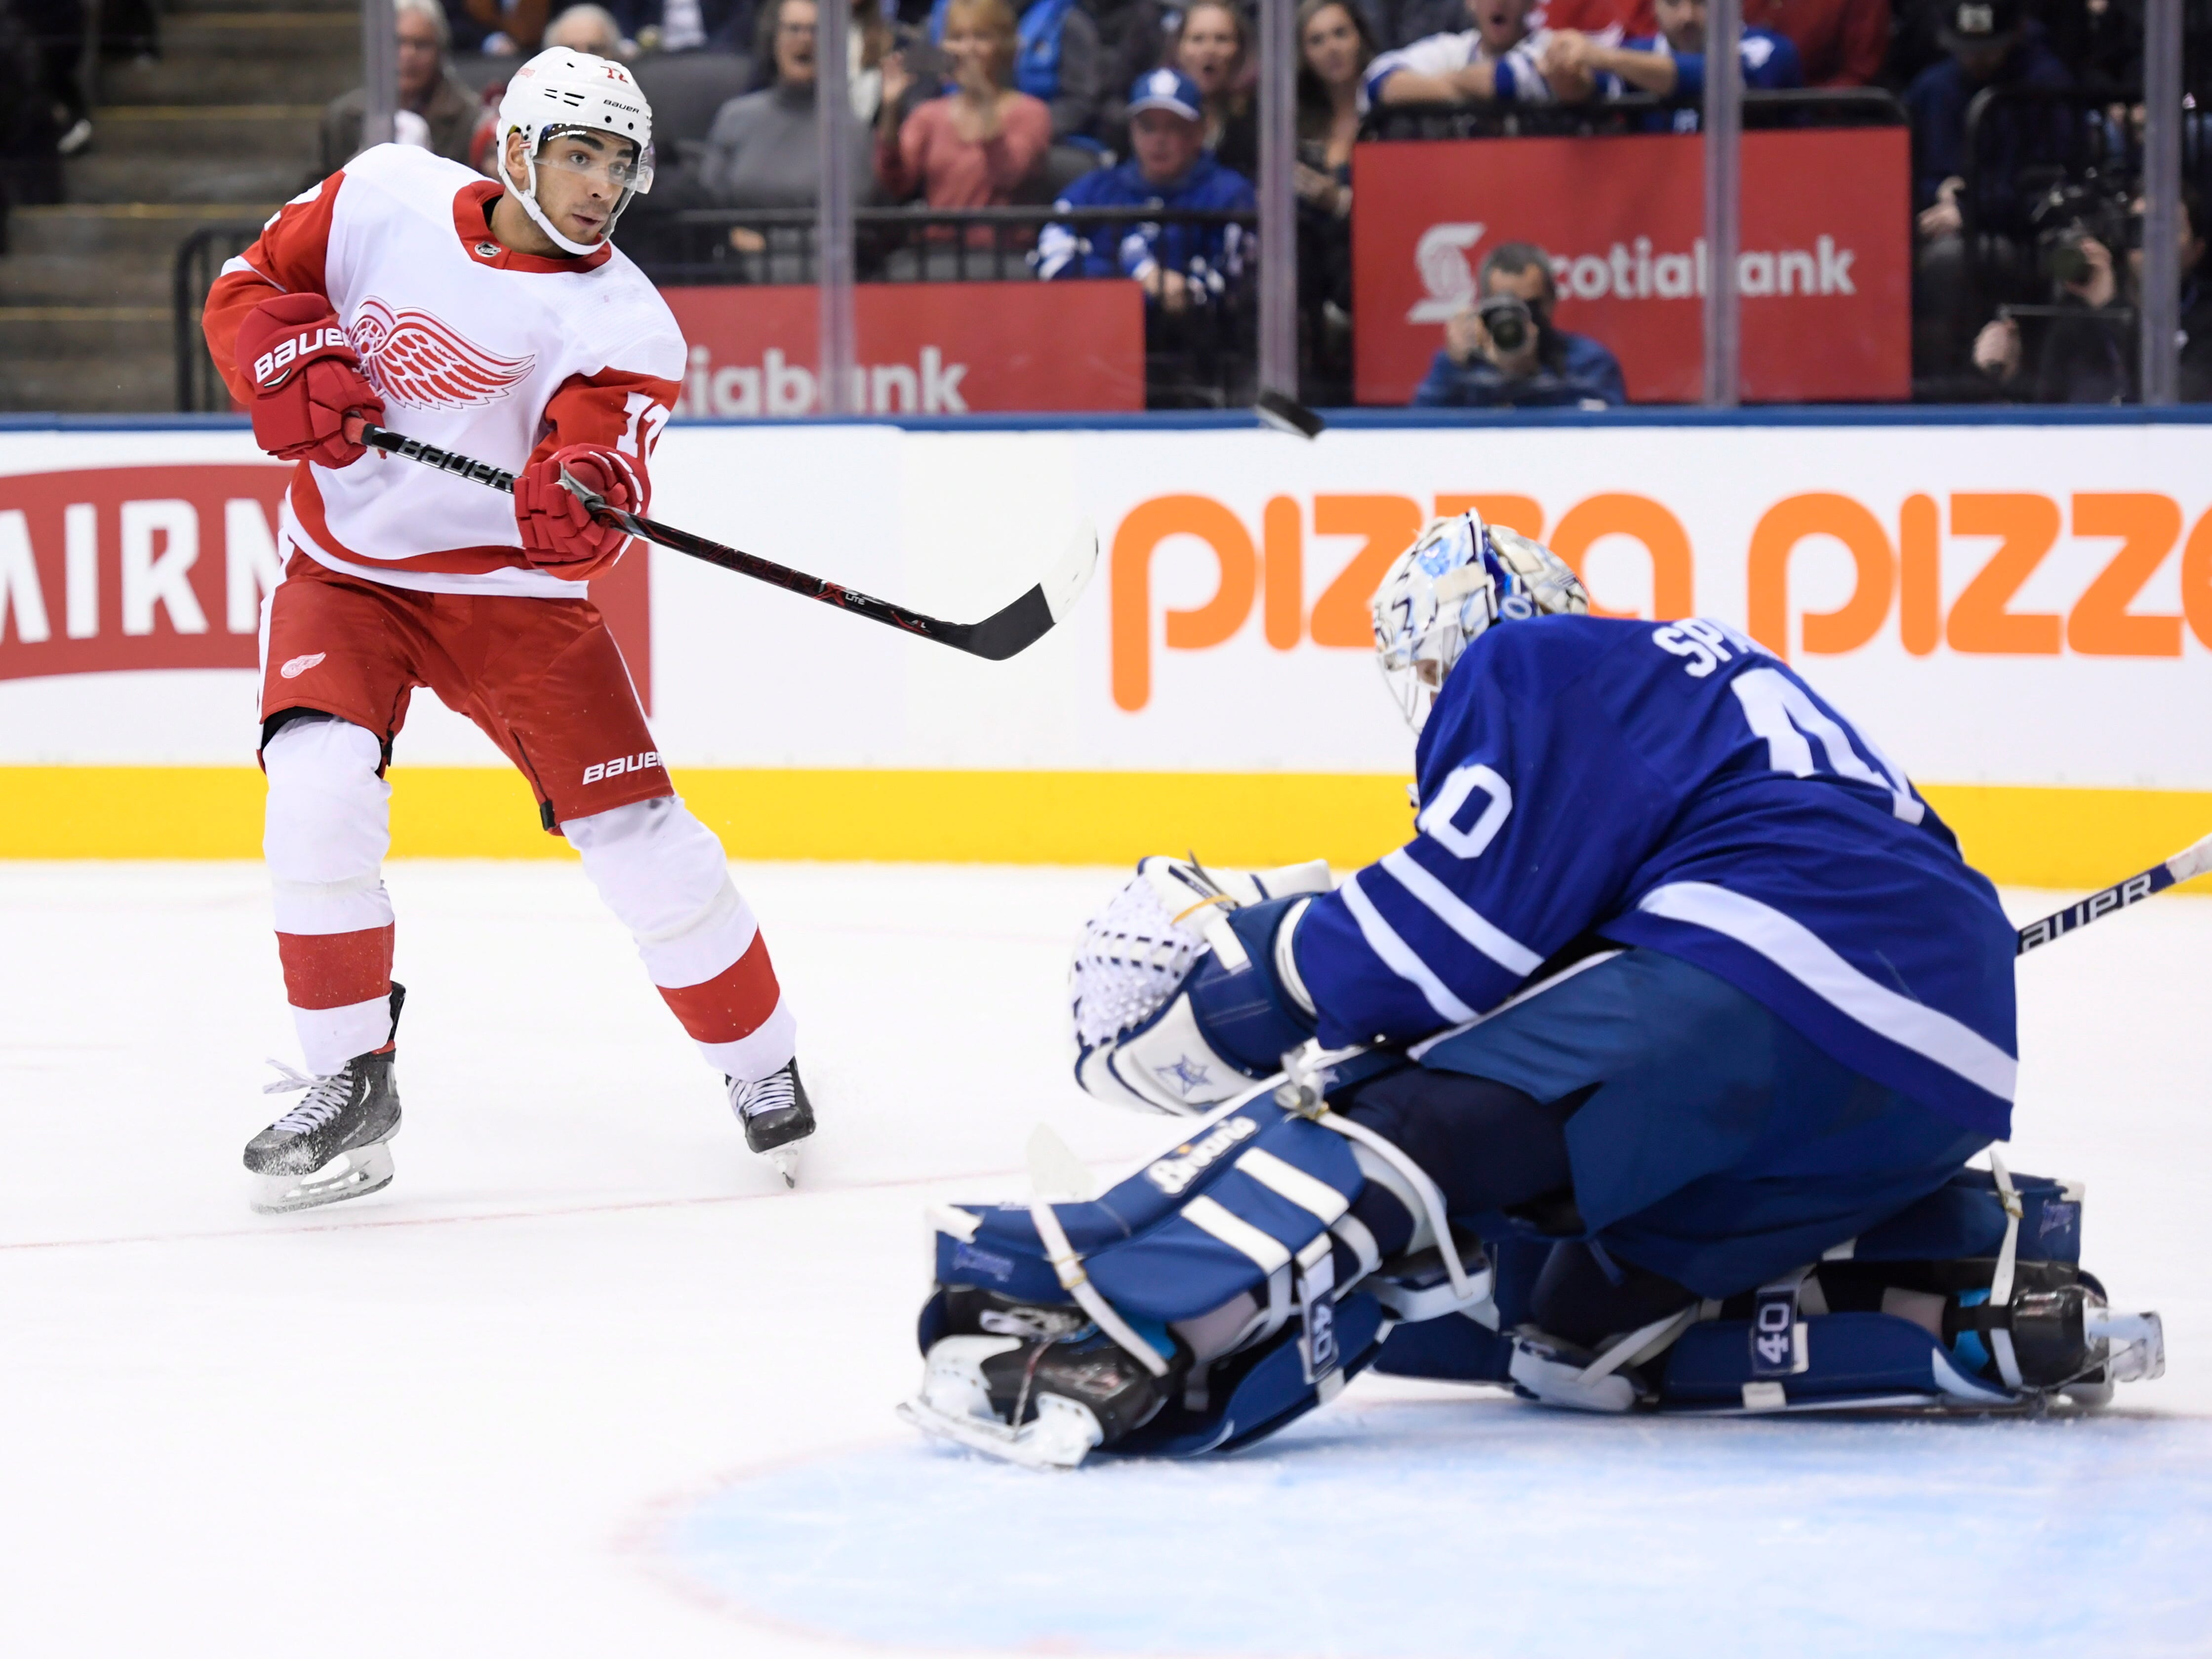 Maple Leafs goaltender Garret Sparks makes a save on Red Wings center Andreas Athanasiou during the third period.